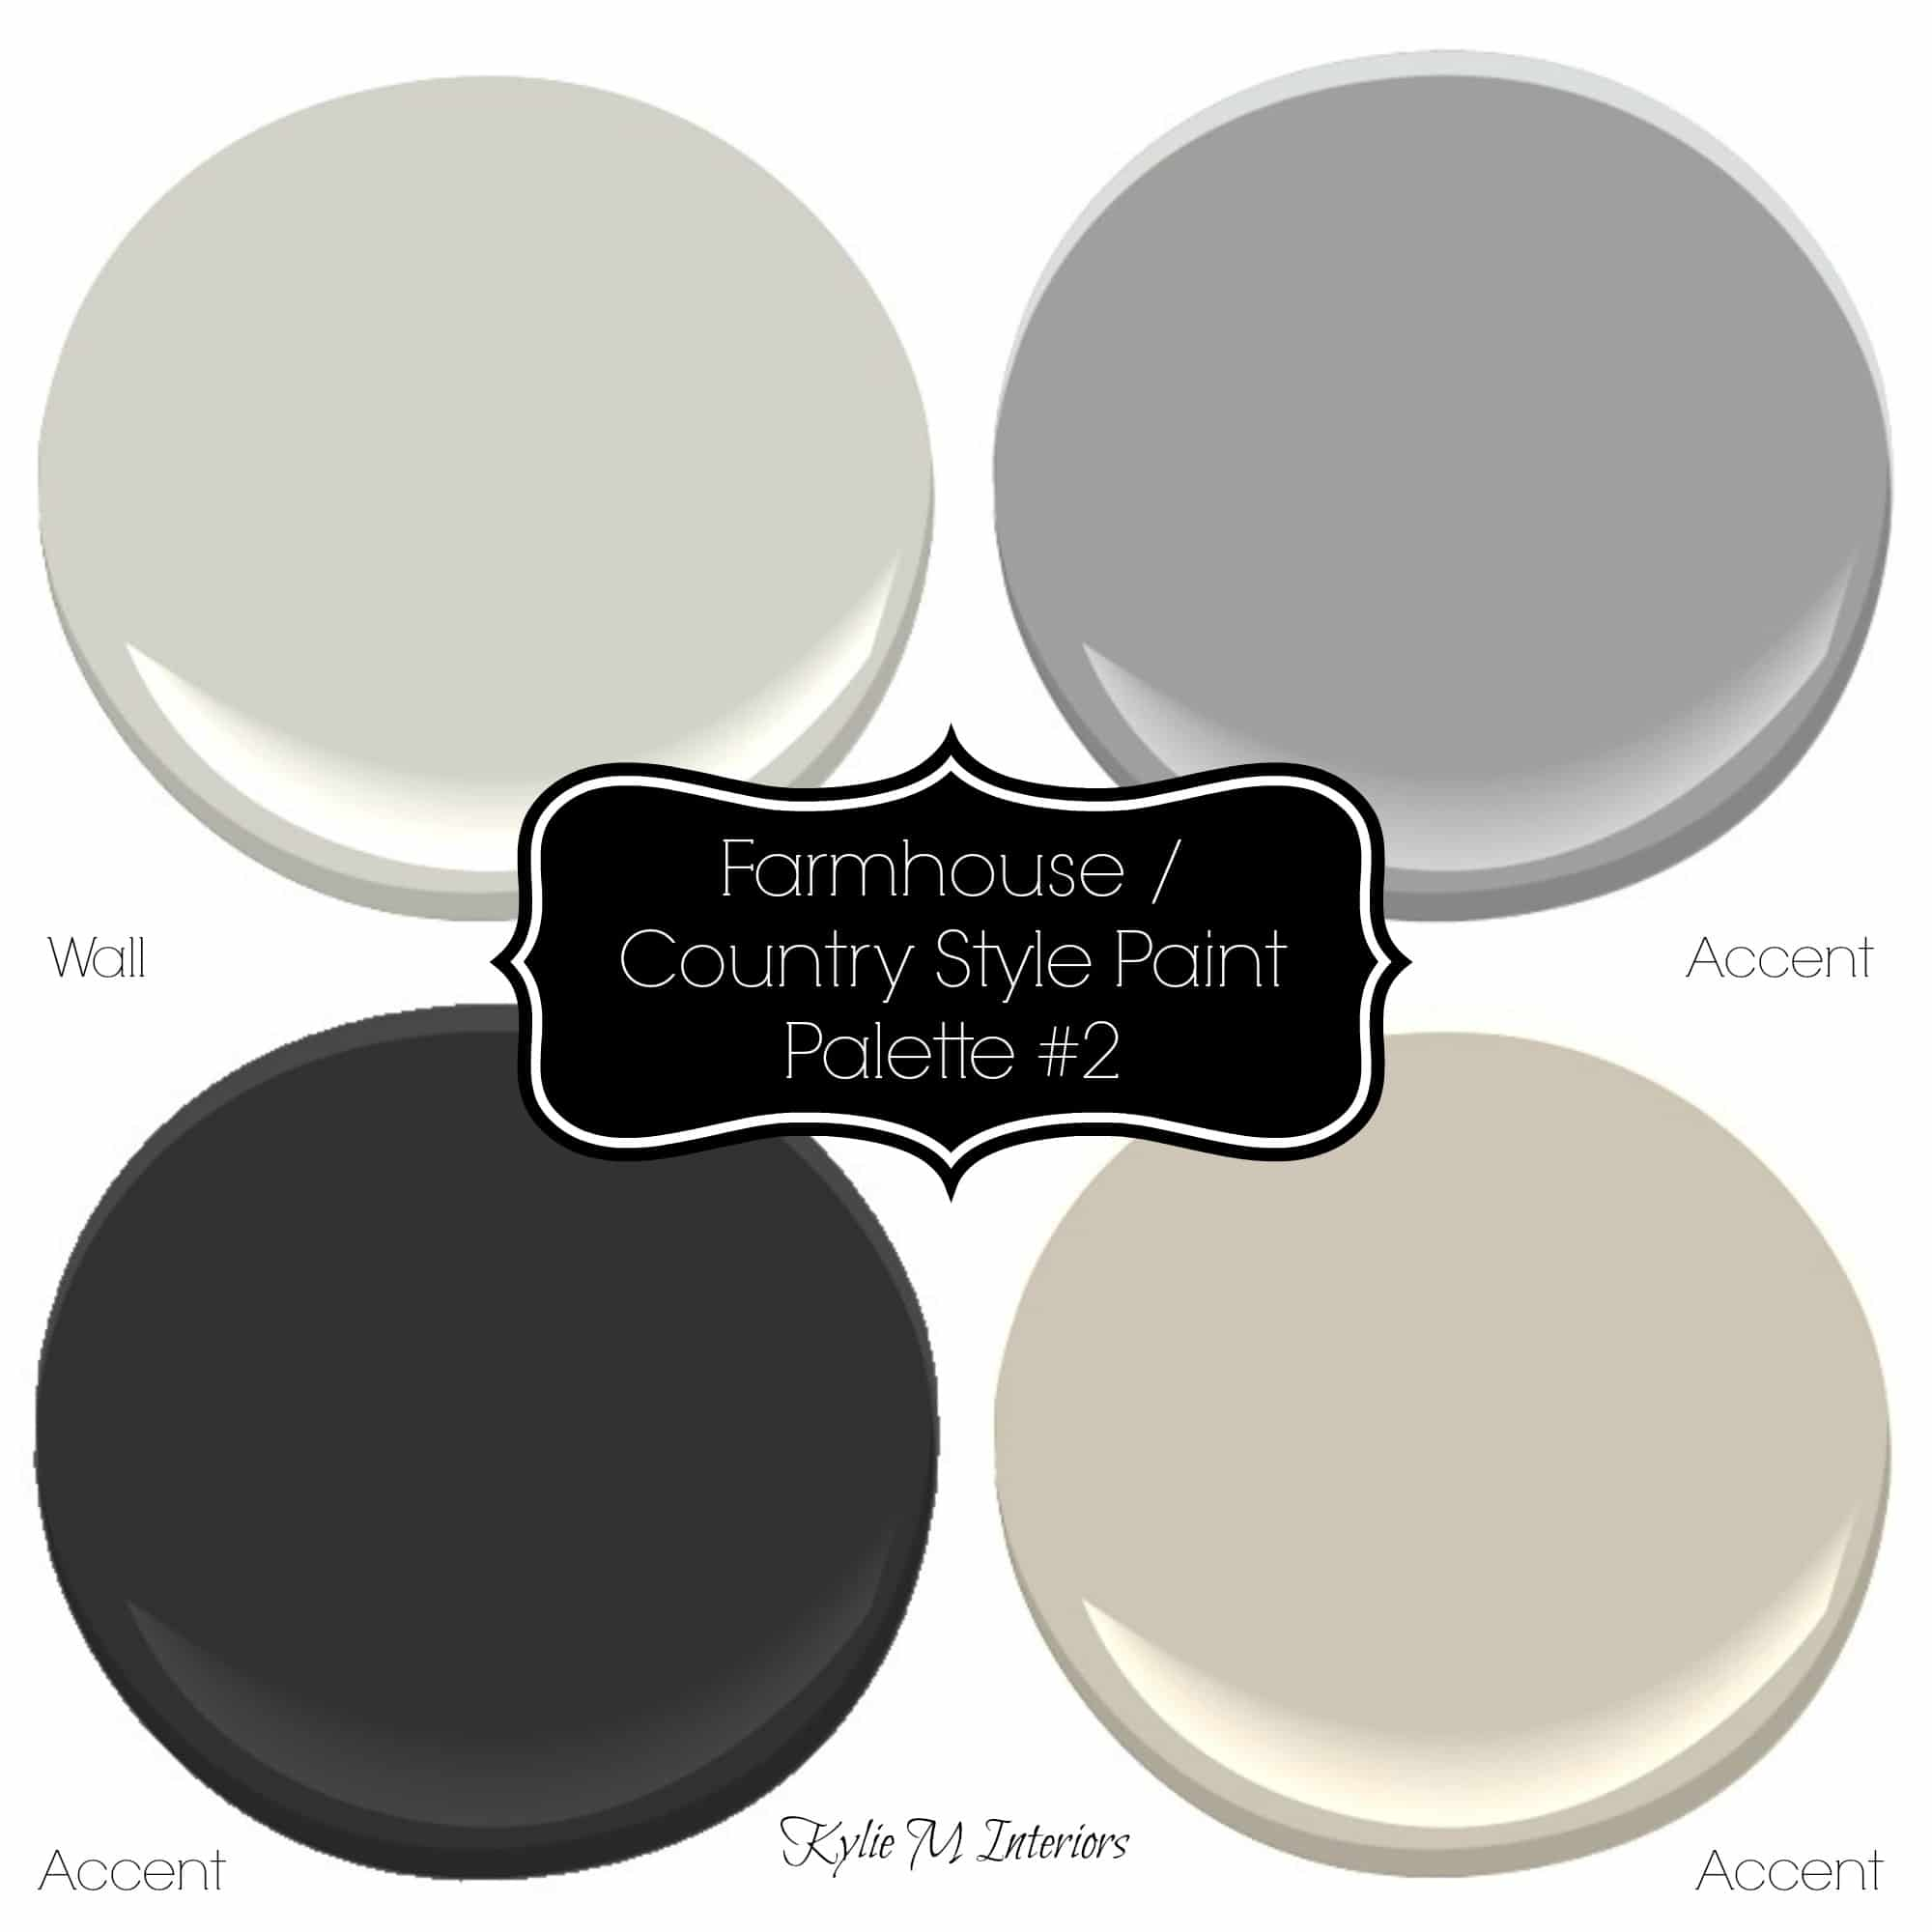 Sherwin williams 3 neutral farmhouse country paint palettes - Sherwin williams exterior textured paint ...